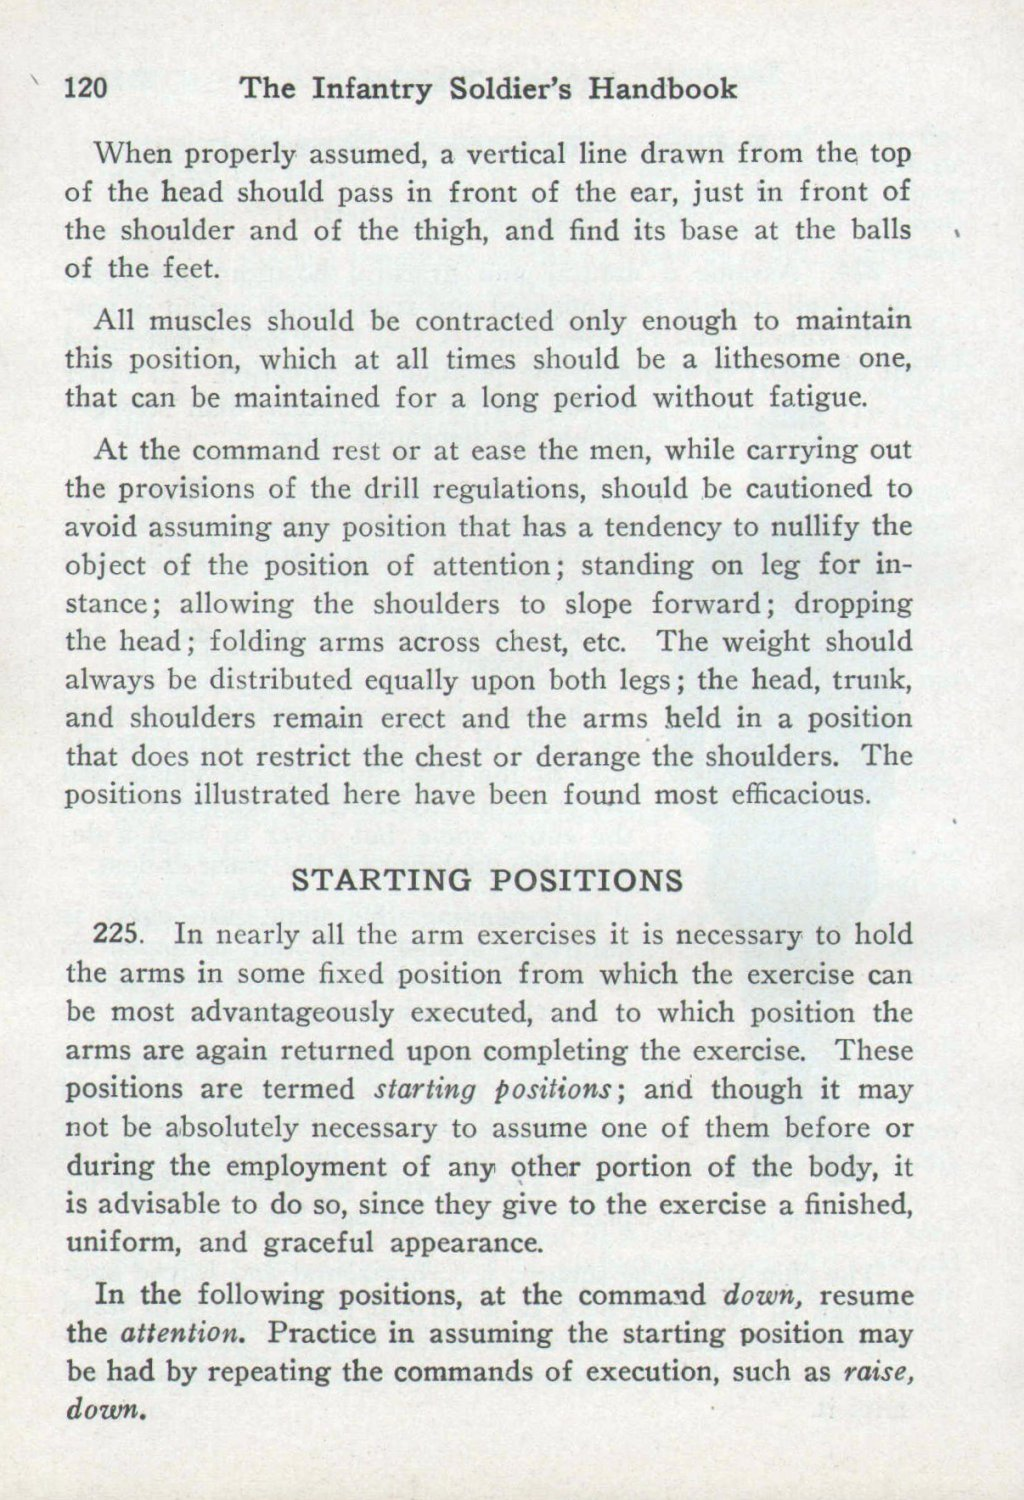 314th Infantry Regiment - Infantry Soldiers Handbook - Waldron - Page 120